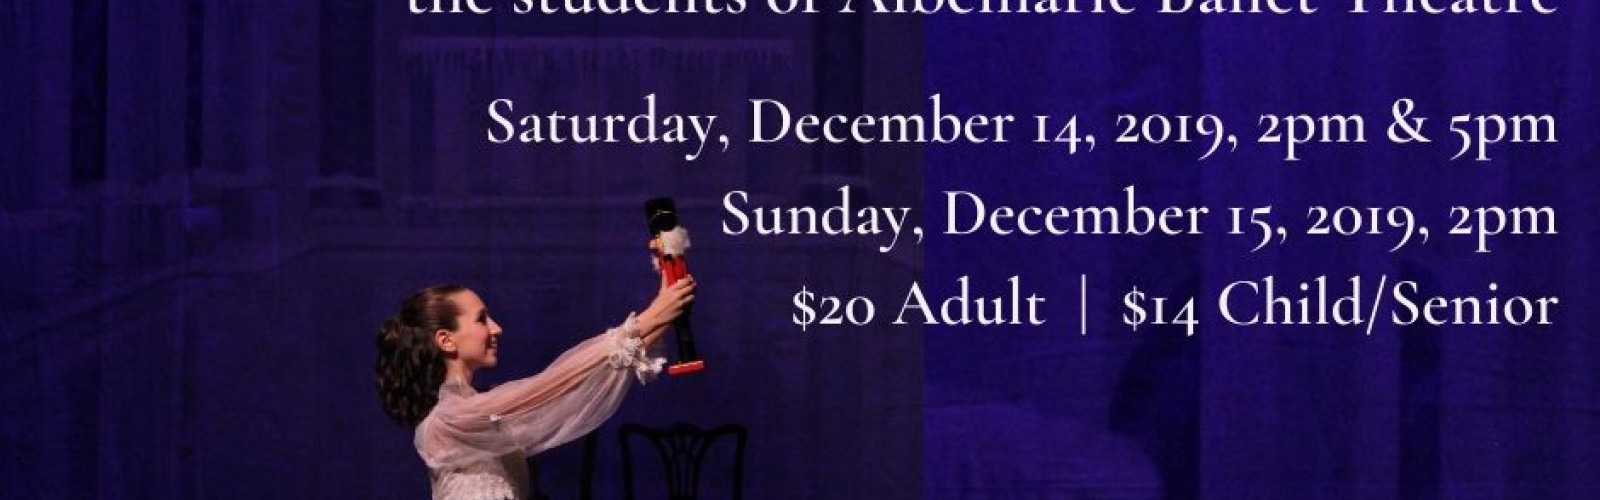 Studio for the Performing Arts and Albemarle Ballet Theatre present The Nutcracker